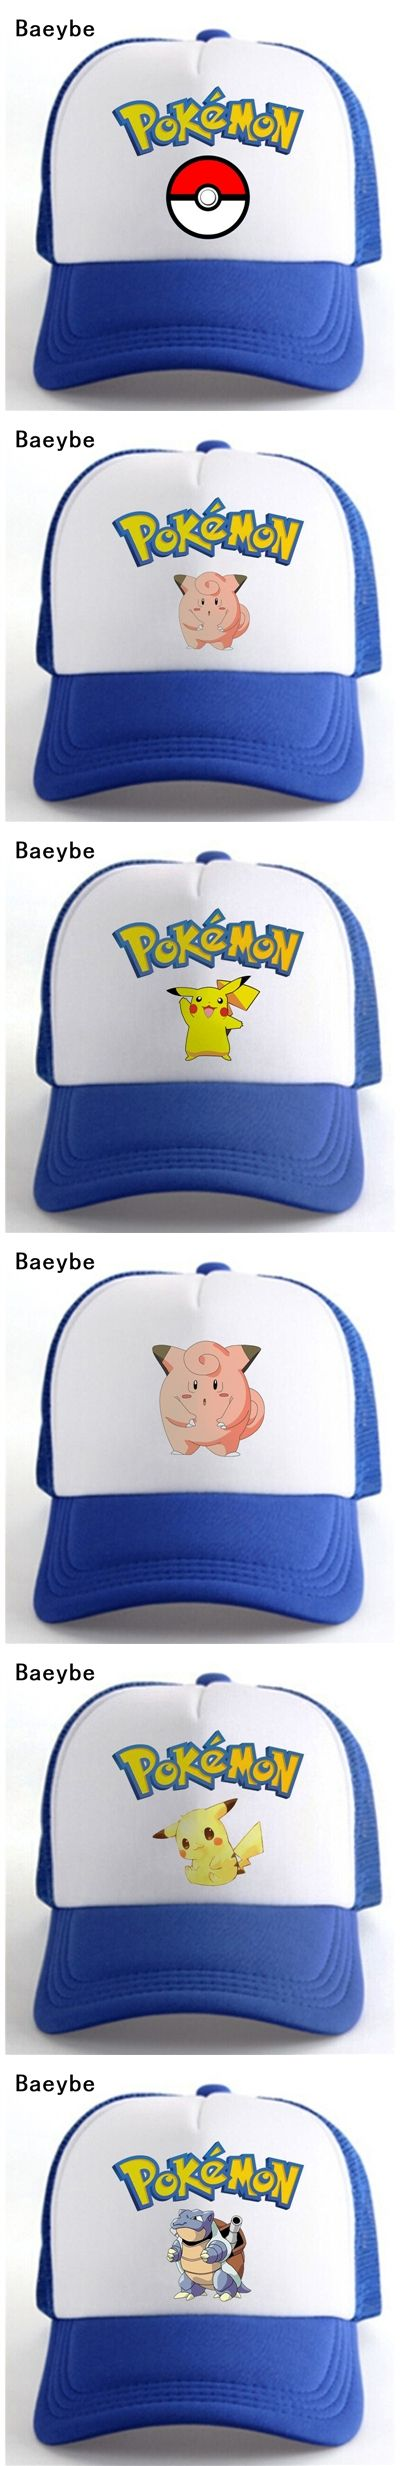 Pocket monster Ash Ketchum pokemon go cap hat baseball cap printing snapback adjustable pokemon cap hat